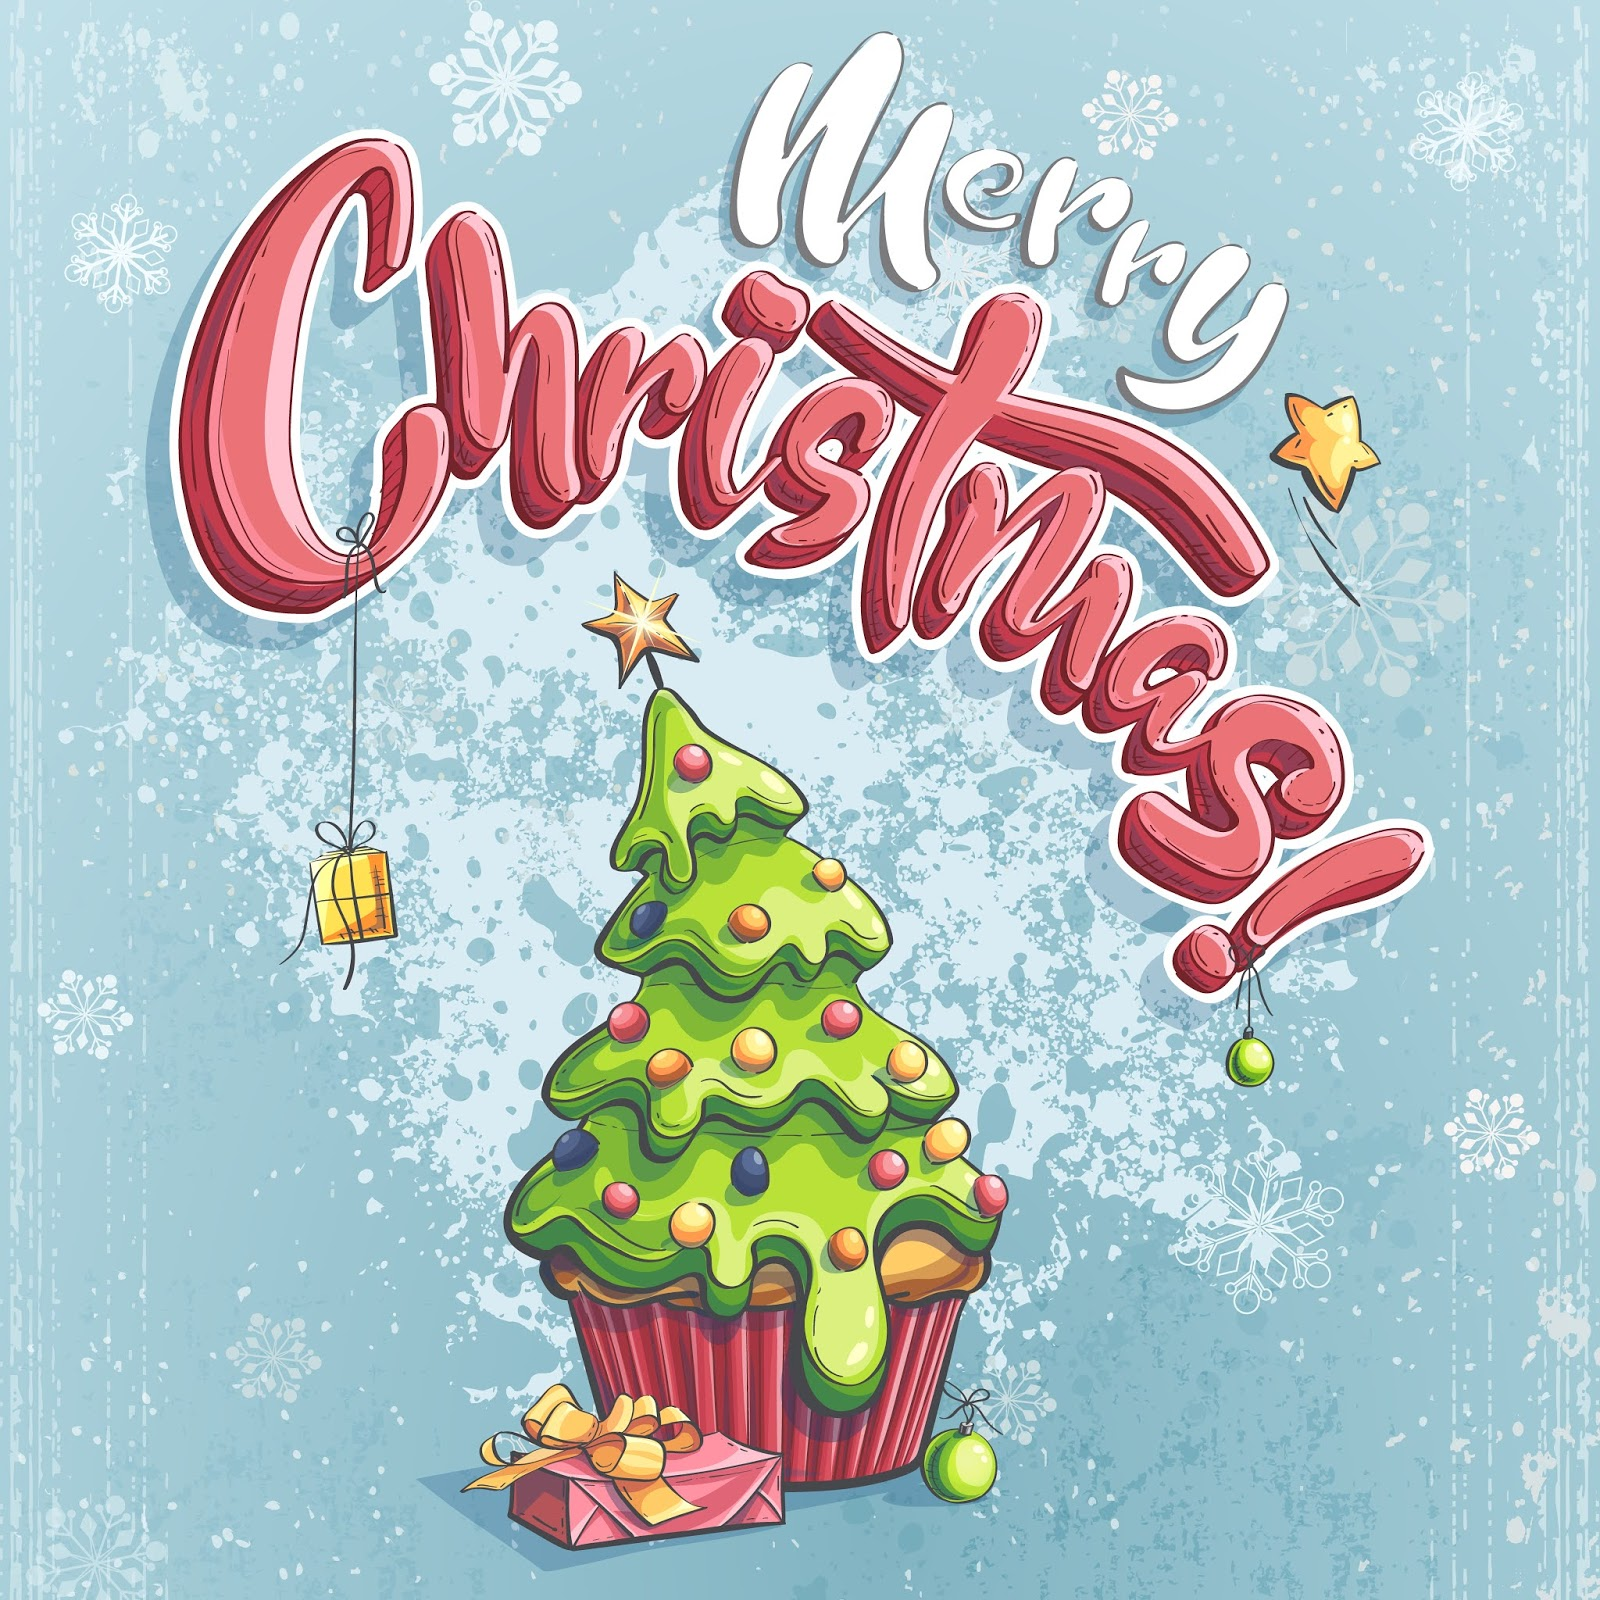 Vector Merry Christmas Illustration With Gift Tree Free Download Vector CDR, AI, EPS and PNG Formats